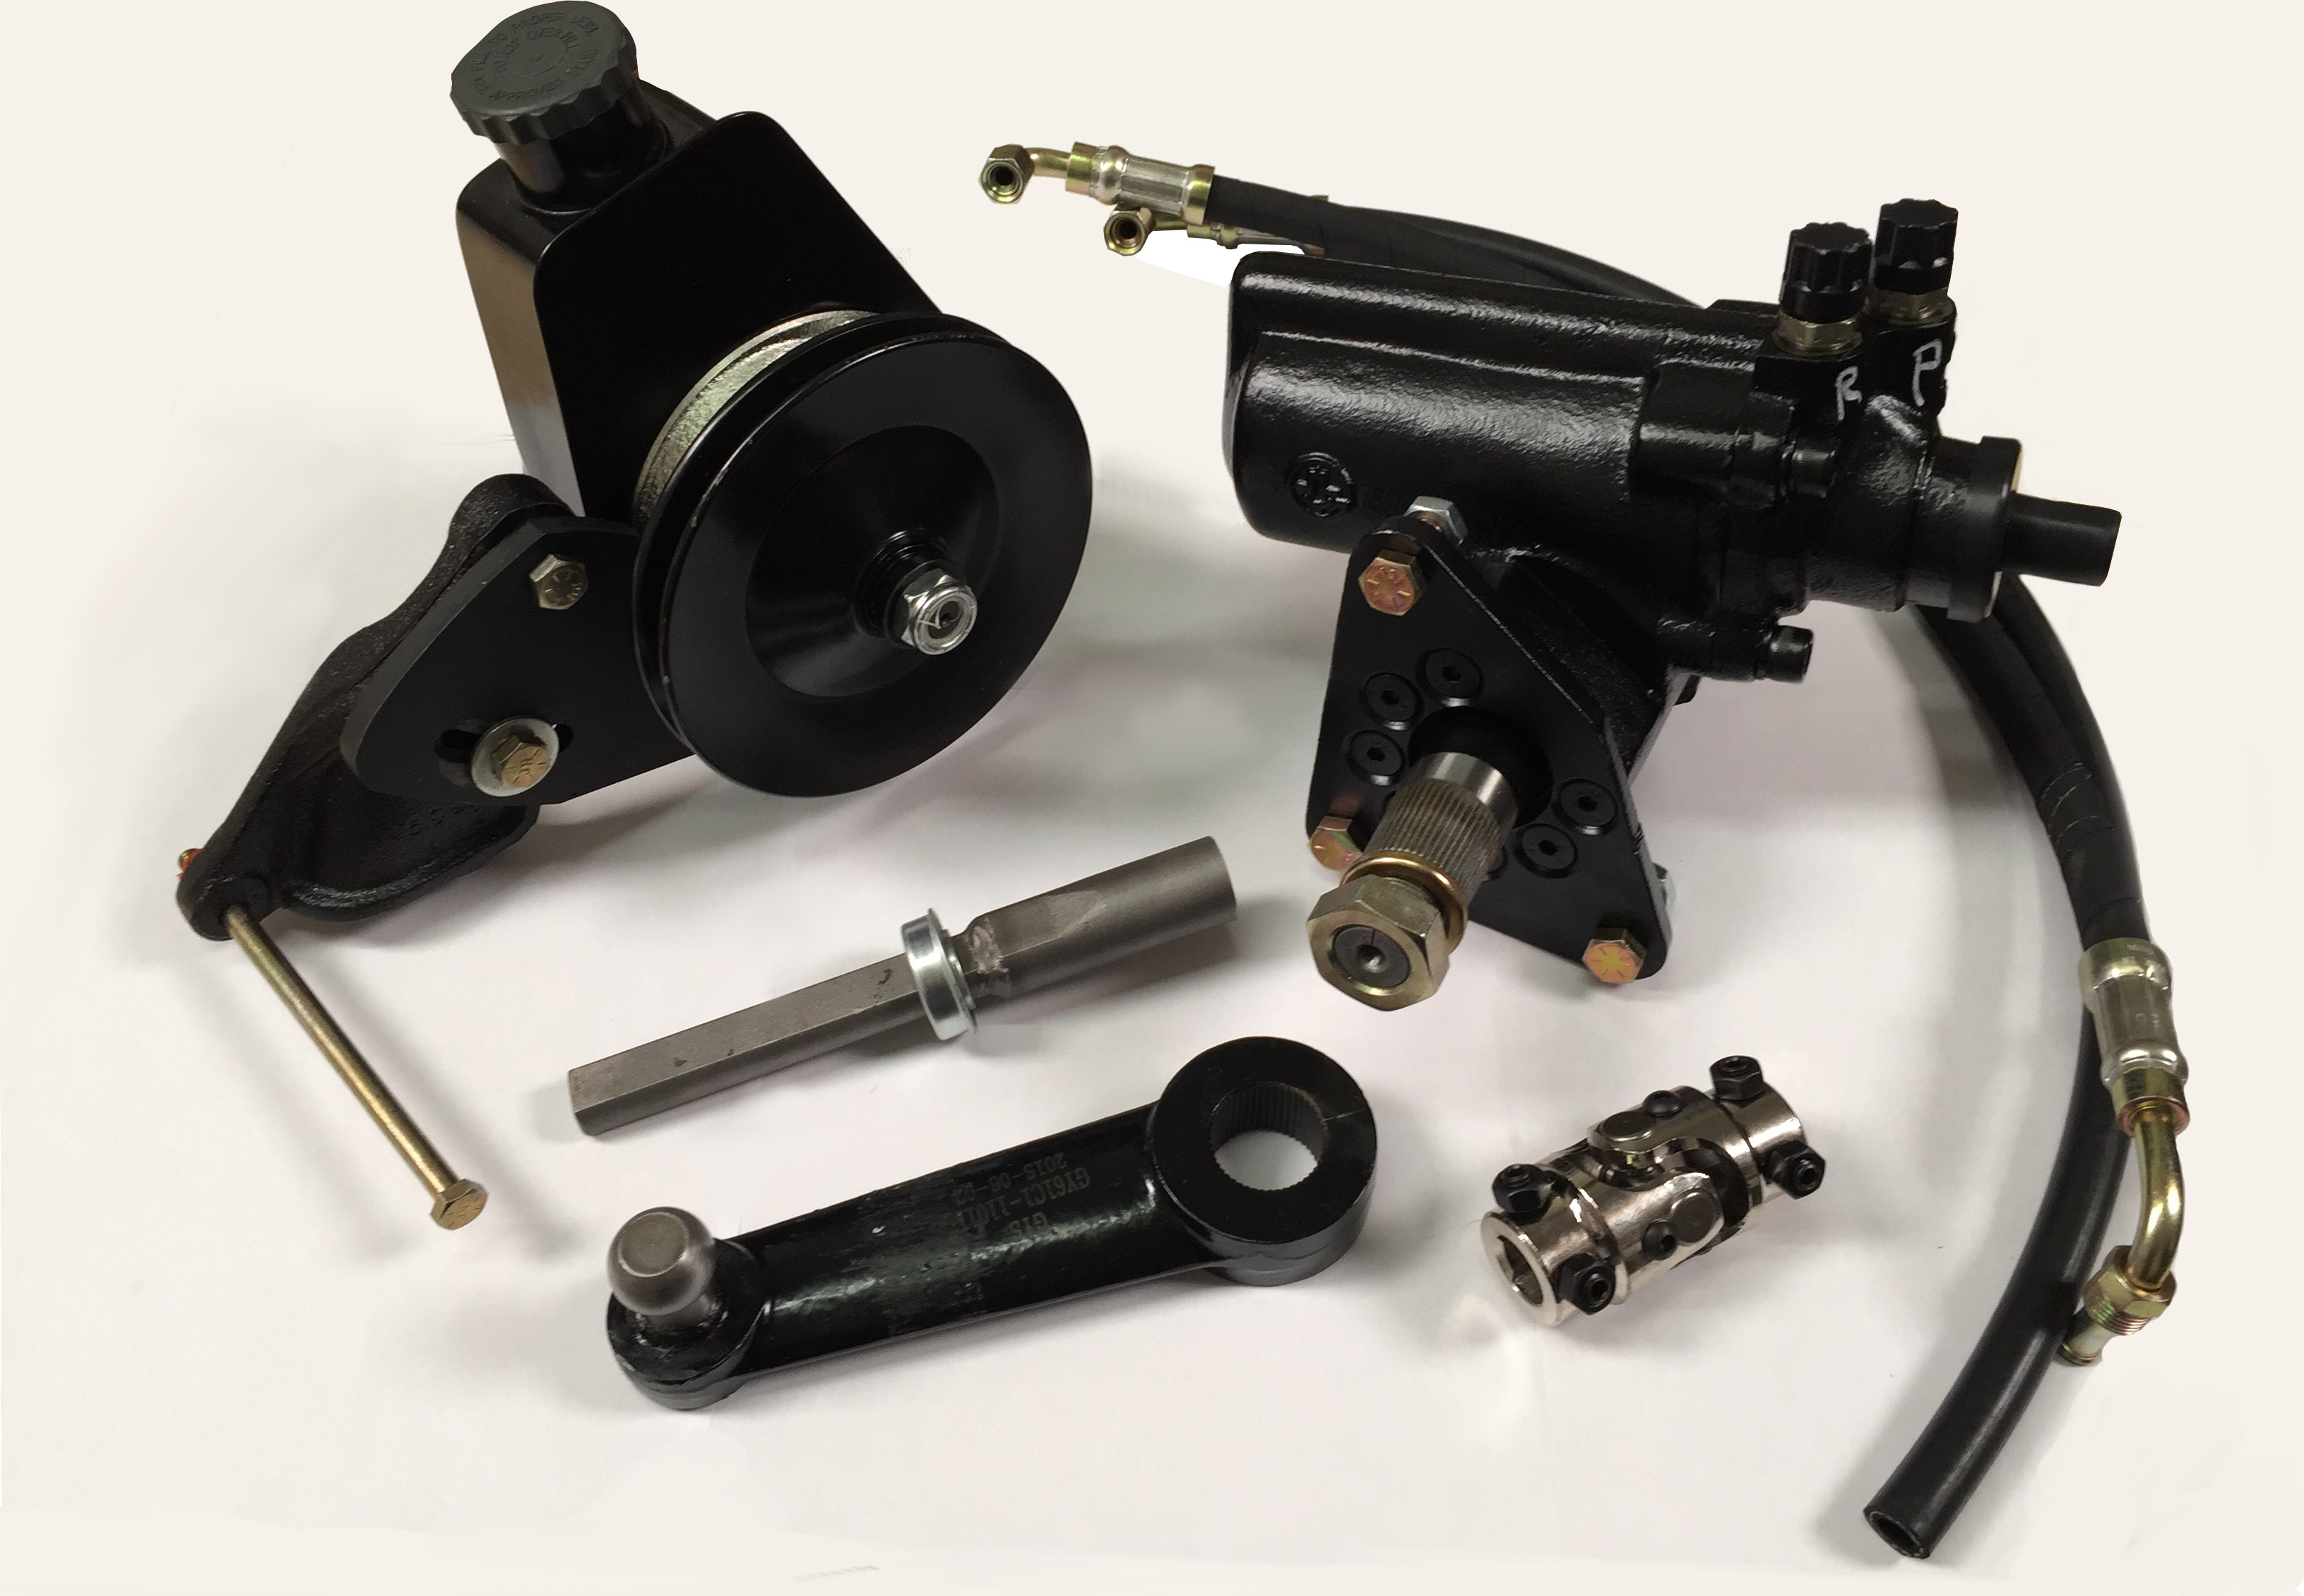 Watch furthermore 600809 Putting My Steering Column additionally Thread65311 Page4 Andere E Glide Police together with Dodge V8 All Models 1955  plete moreover 1961 1962 1963 1964 Cadillac Steering Column Tube Shaft Levers Exc Tilt. on 54 chevy turn signal switch wiring